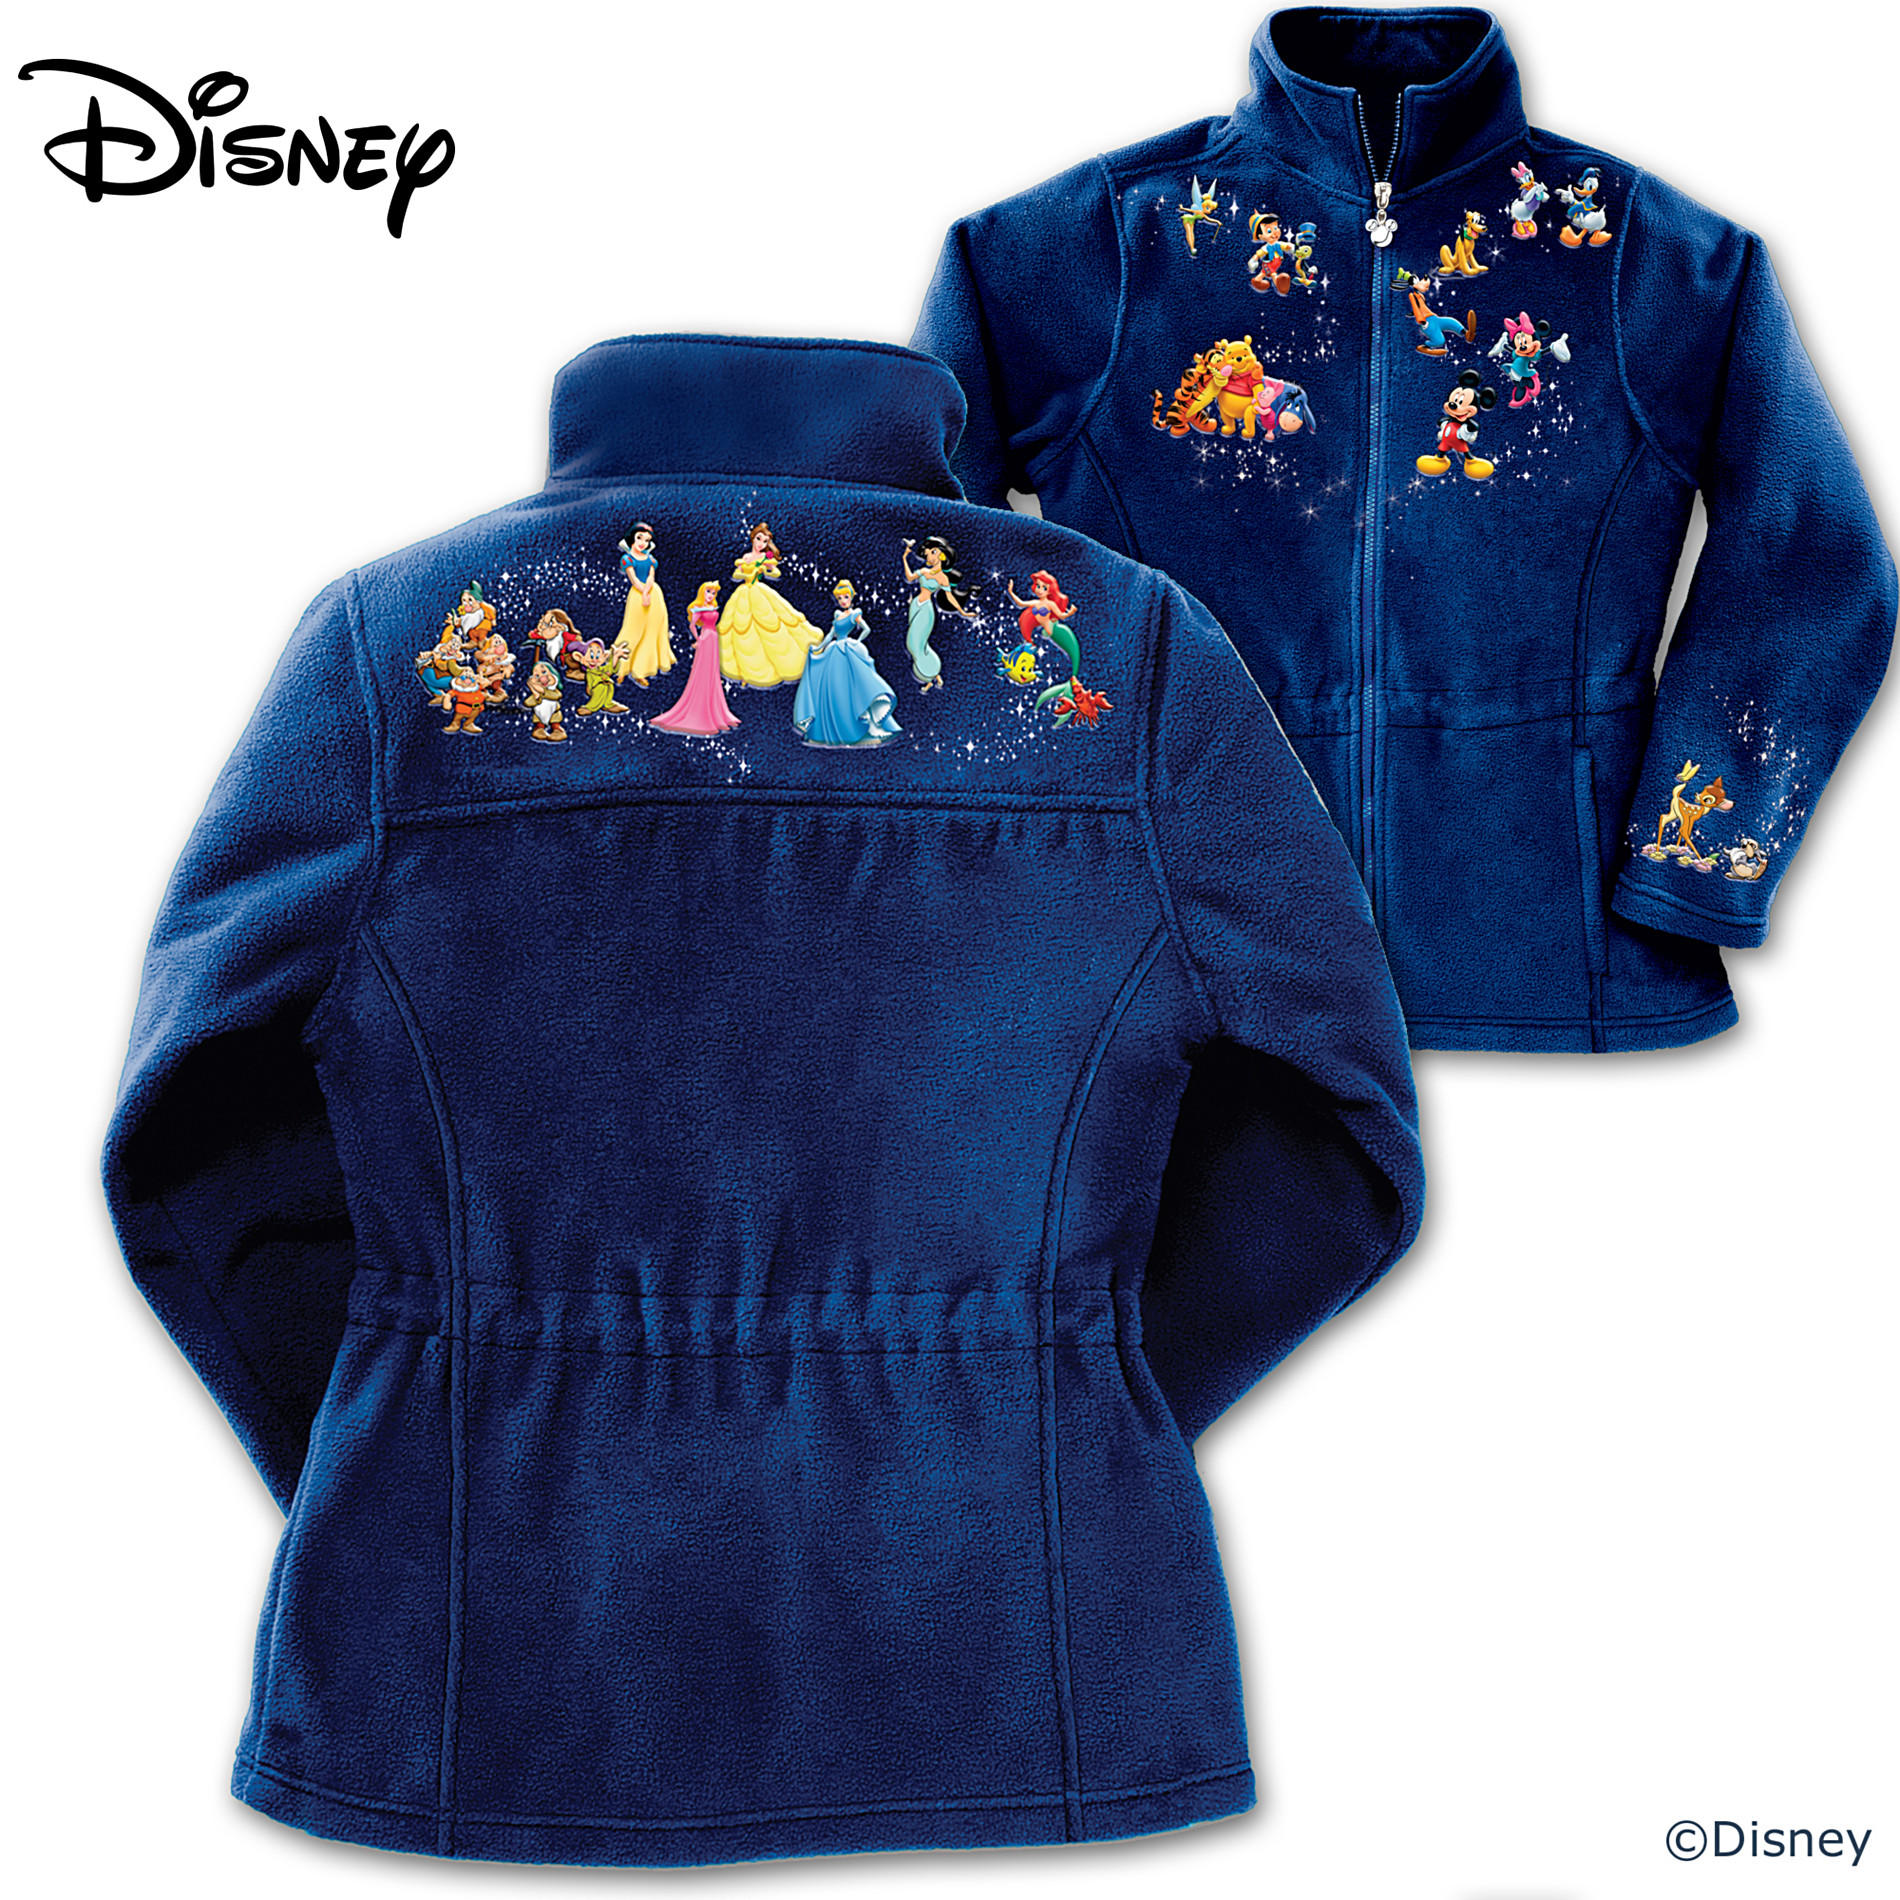 The Bradford Exchange Disney Characters Fleece Jacket: Magic Of Disney at Sears.com